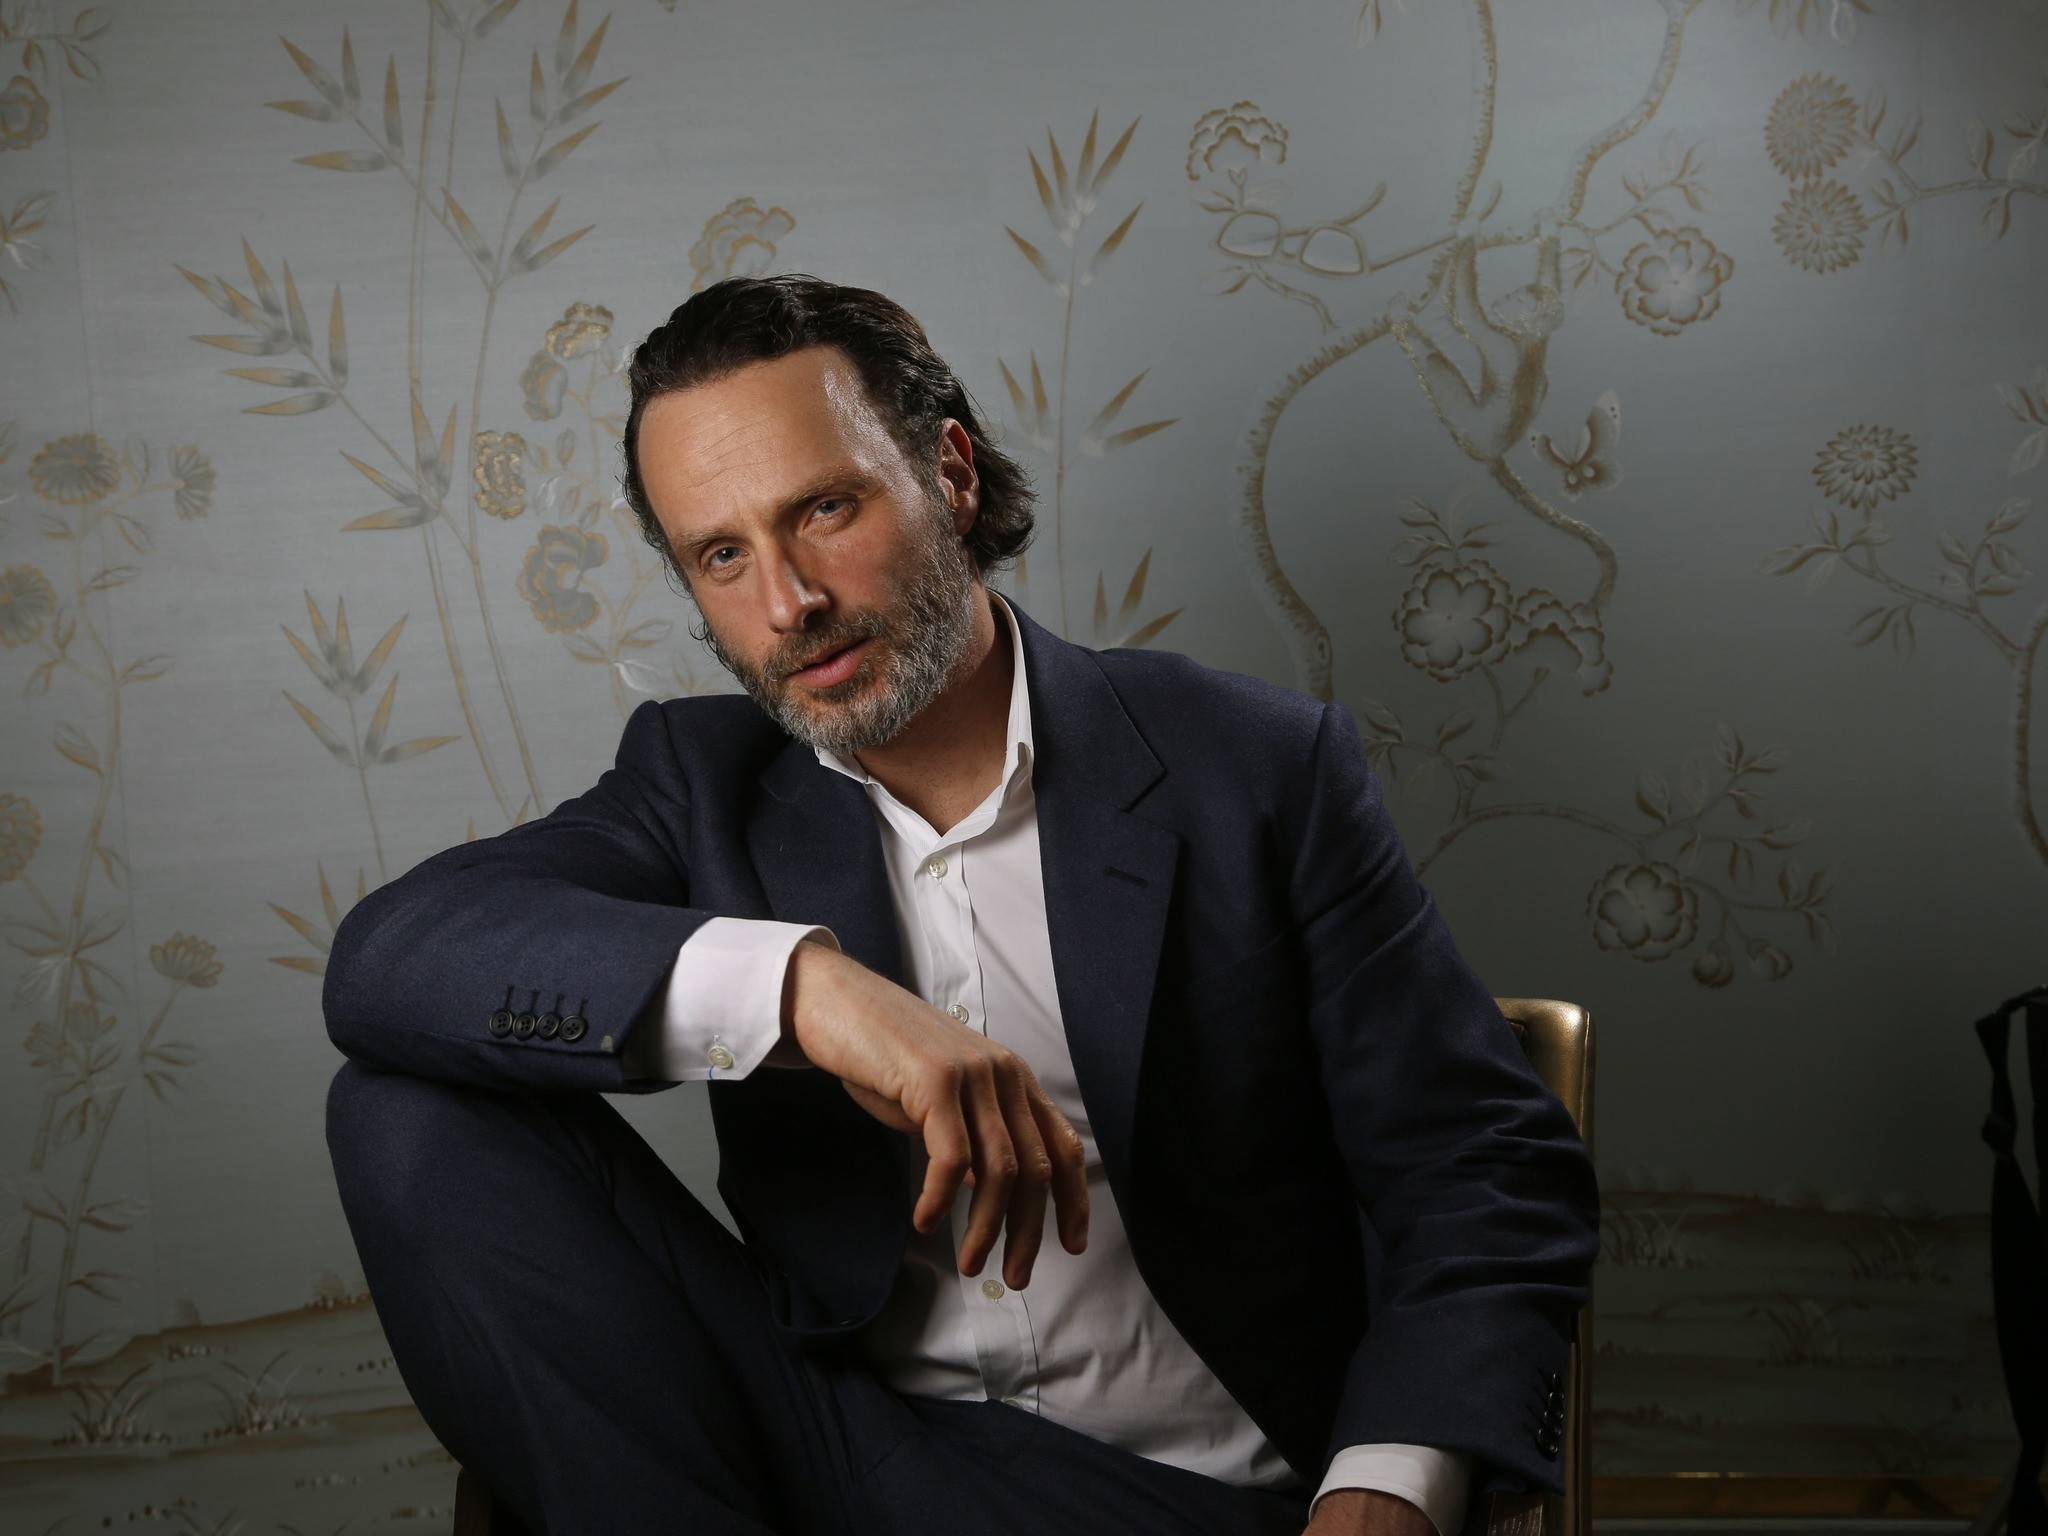 Happy 48th birthday to the talented and amazing Andrew Lincoln